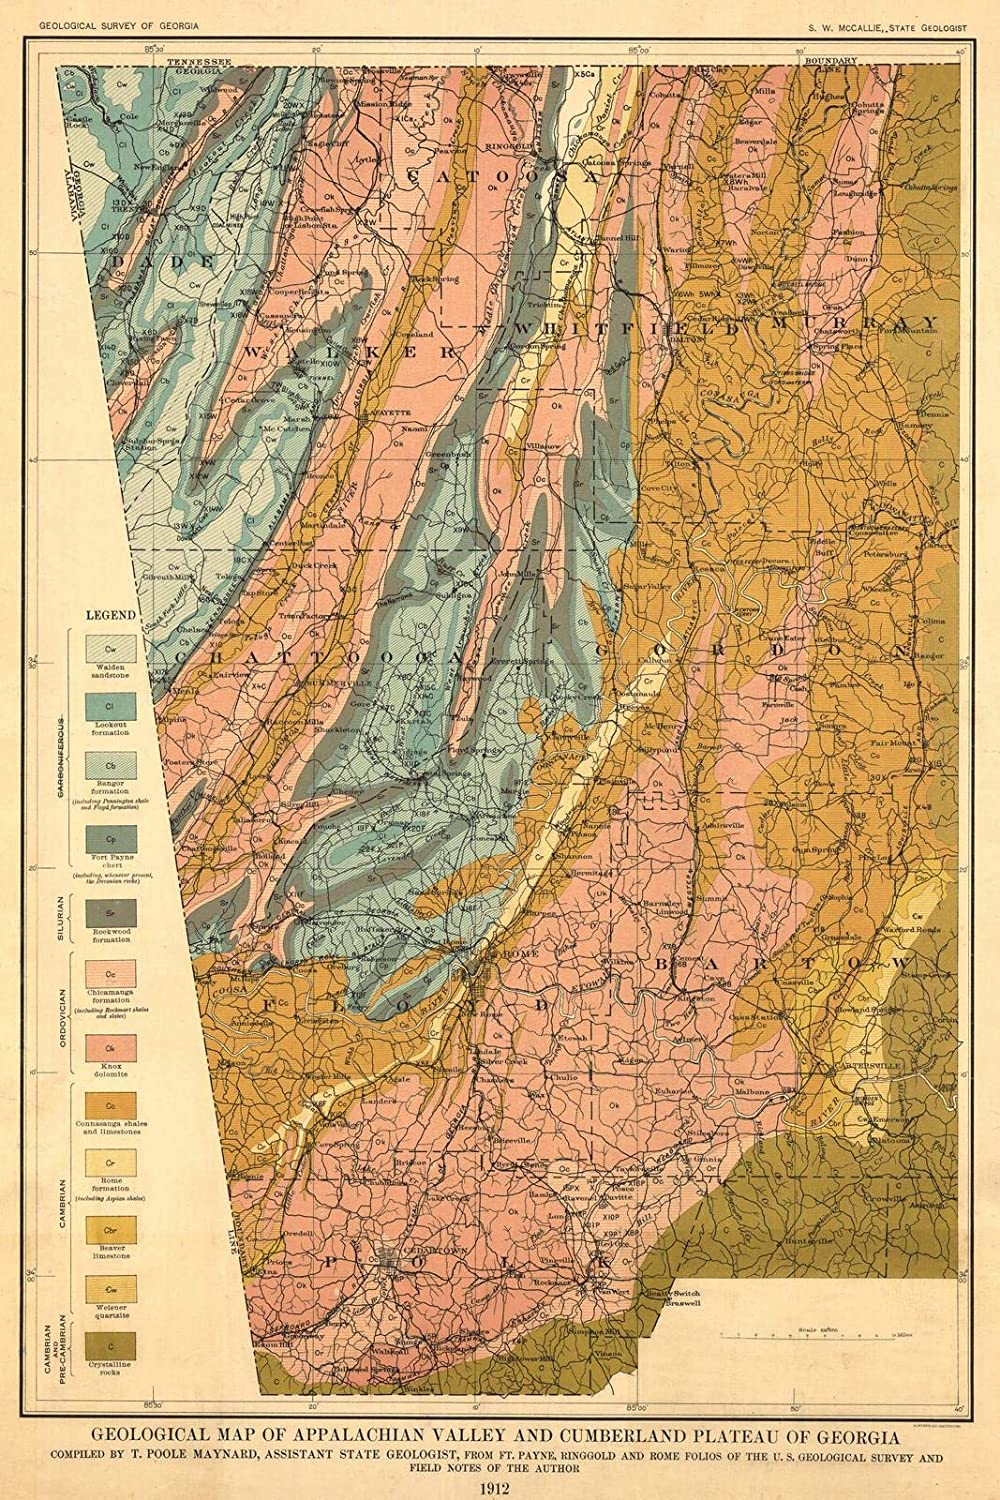 Amazon.com: Historic Map | 1912 Geological Map of Appalachian Valley ...